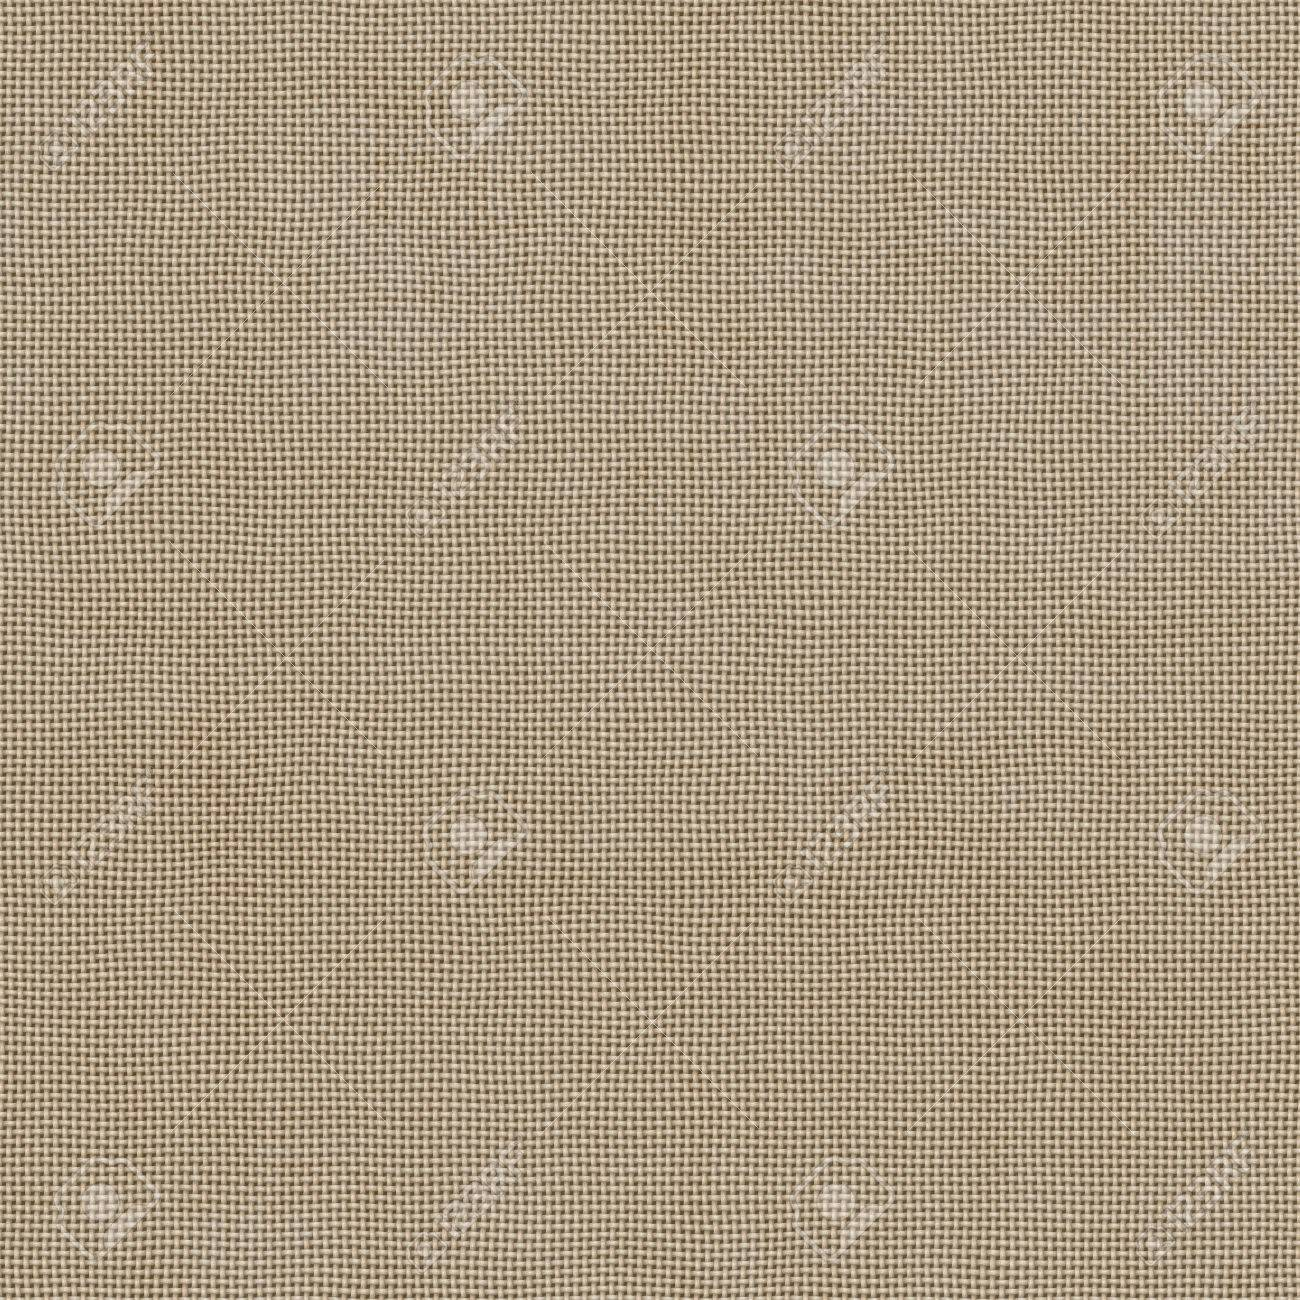 Seamless Texture Canvas Background A High Resolution Stock Photo